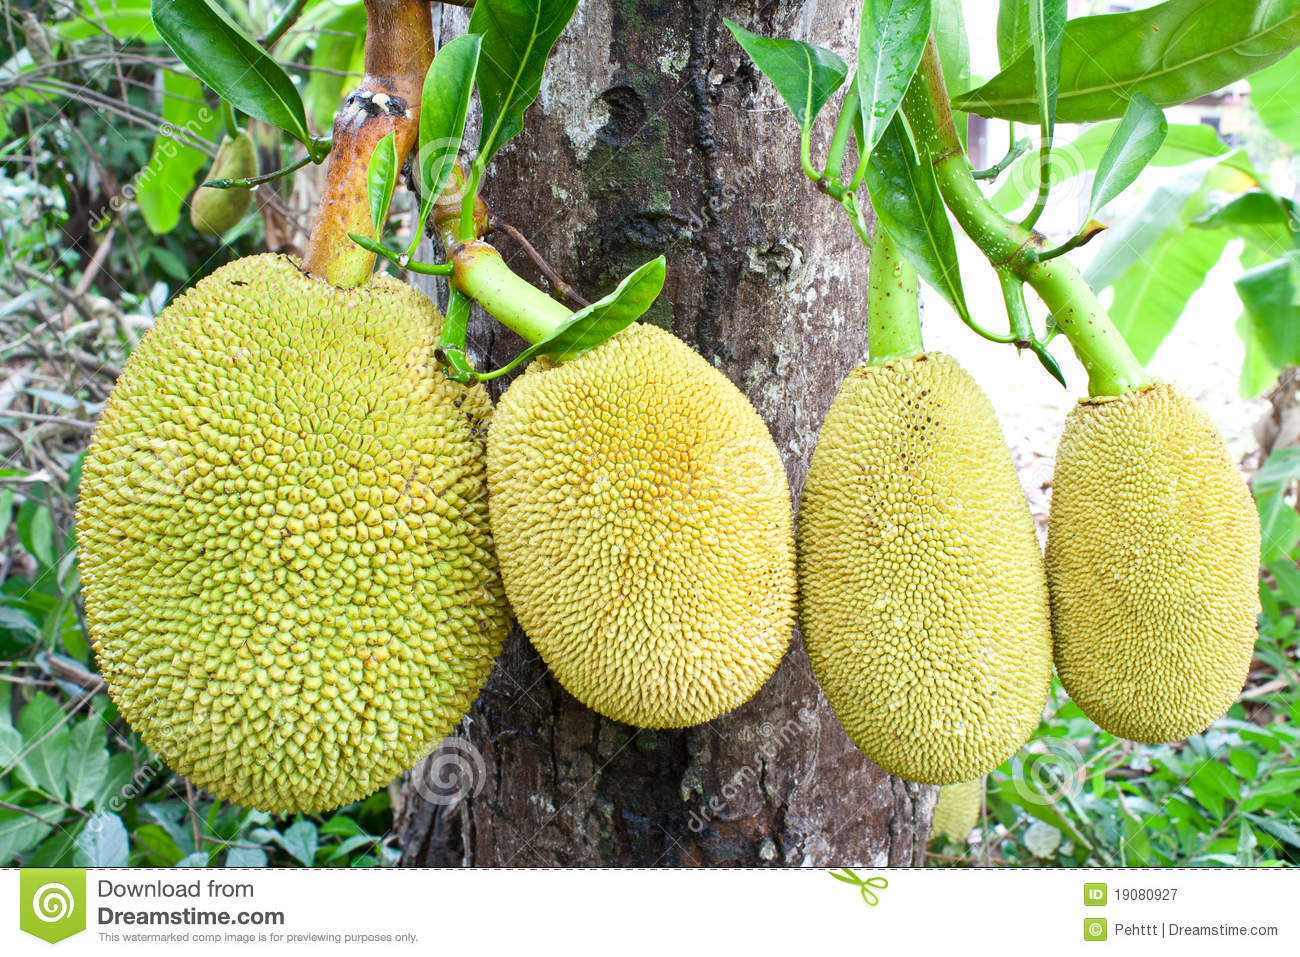 how to know when cut jackfruit is ripe